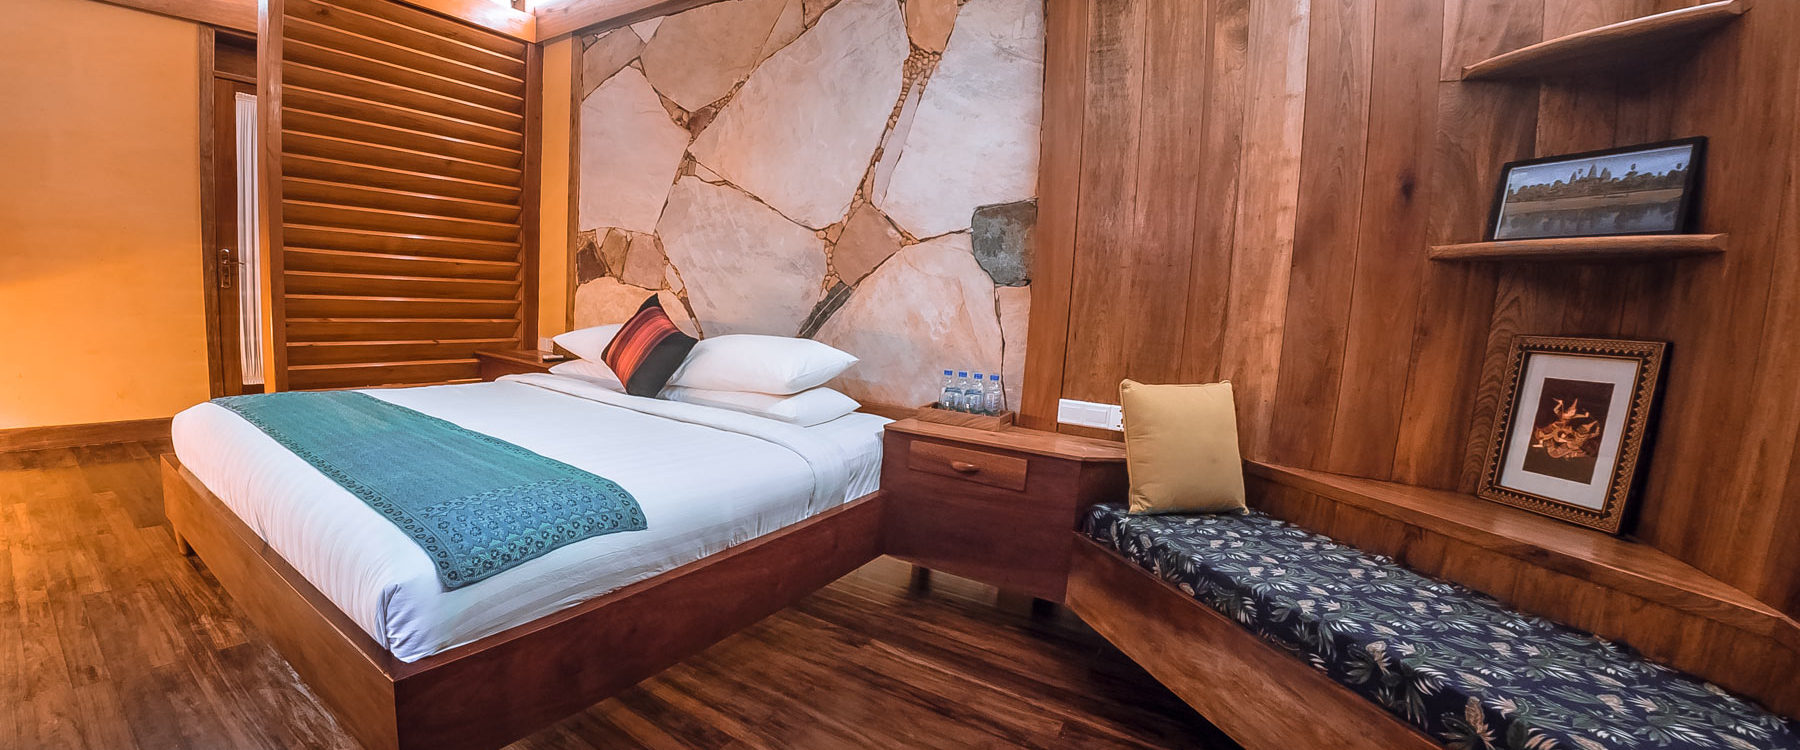 Pool Villa Bedroom, design with natural - wooden parquet, mineral stones, a chill out bench and lots of commodities for the guests in Veranda Natural Resort.